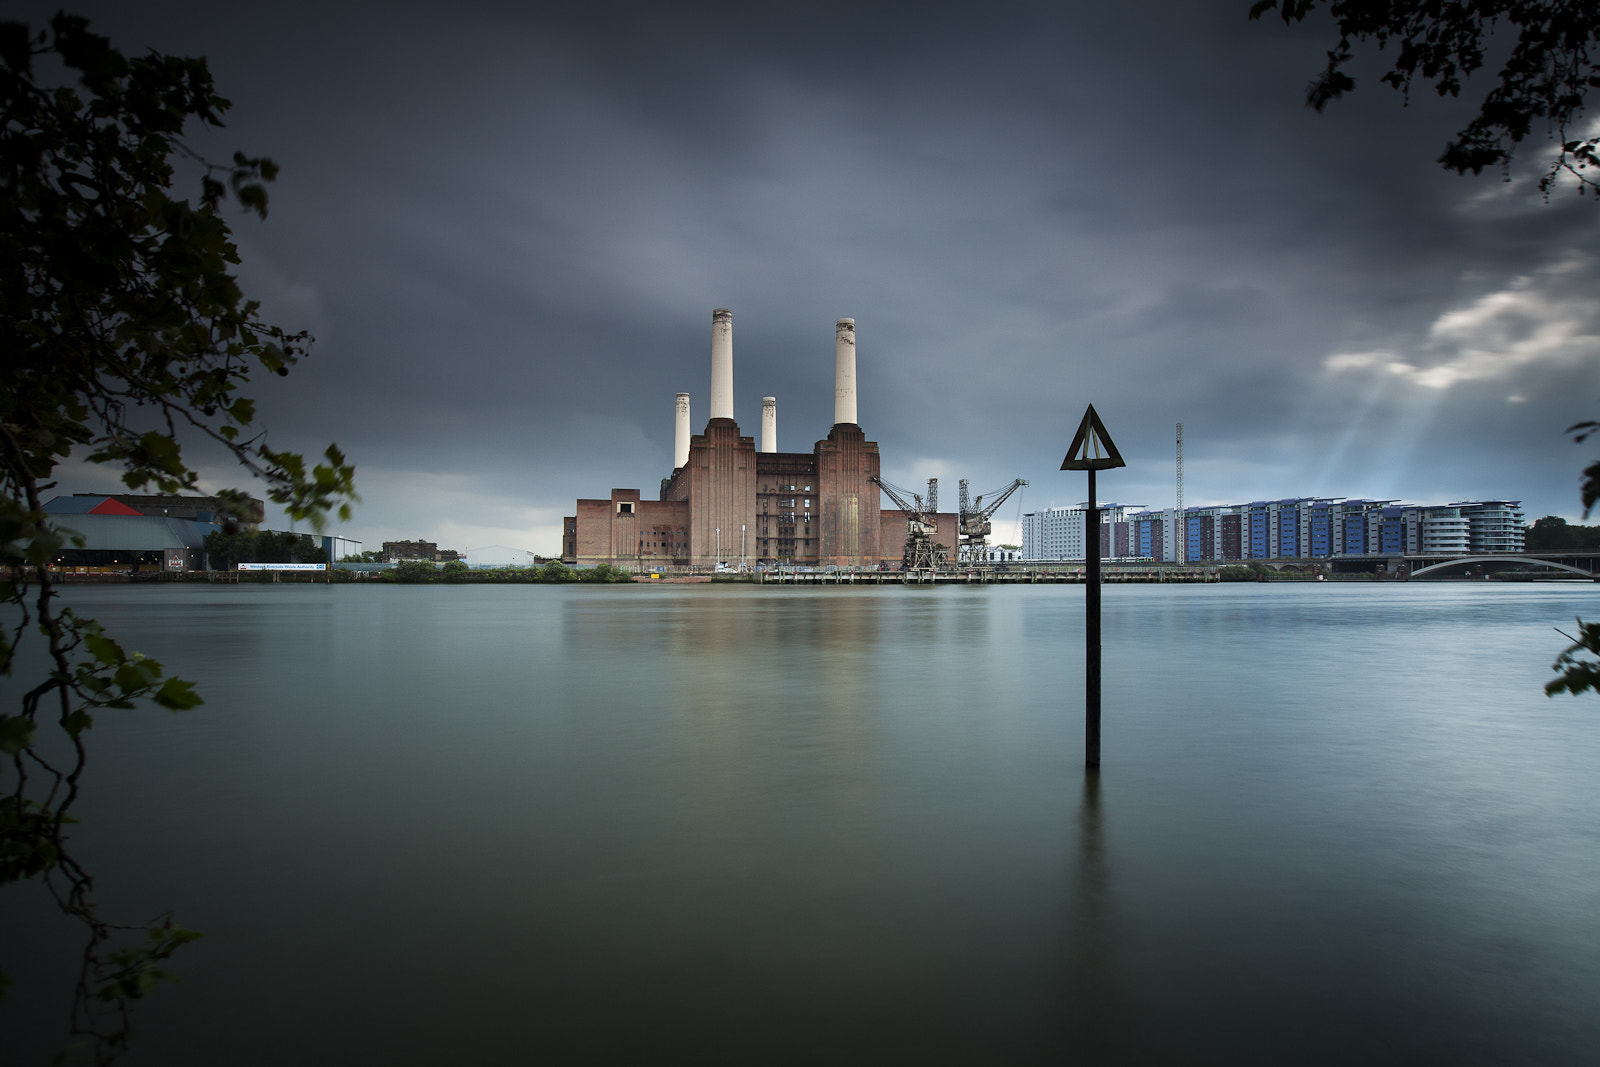 Photograph Passing storm Battersea power station by Terry Gibbins on 500px